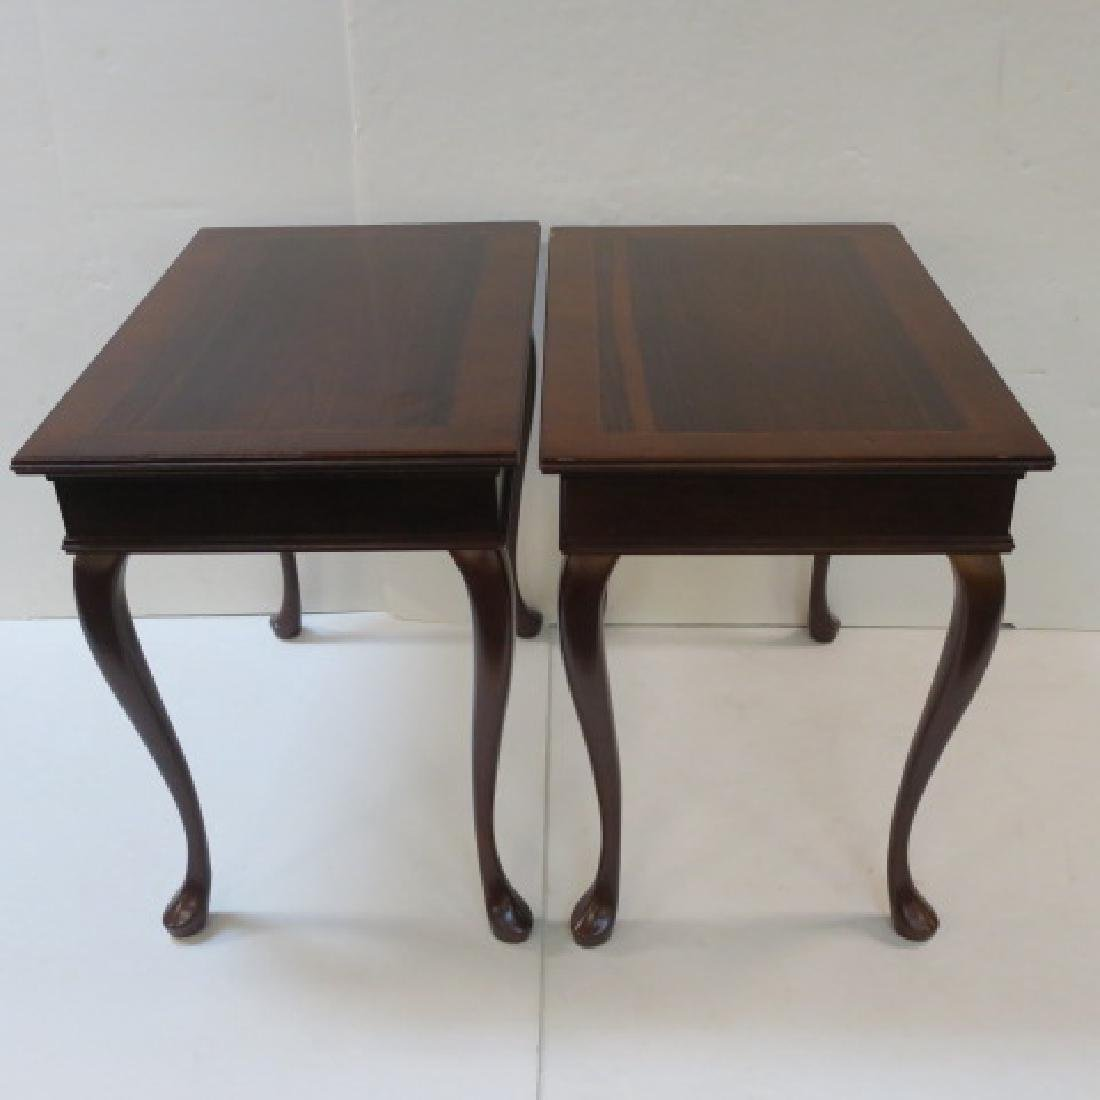 Pair of Queen Anne Rosewood and Mahogany End Tables: